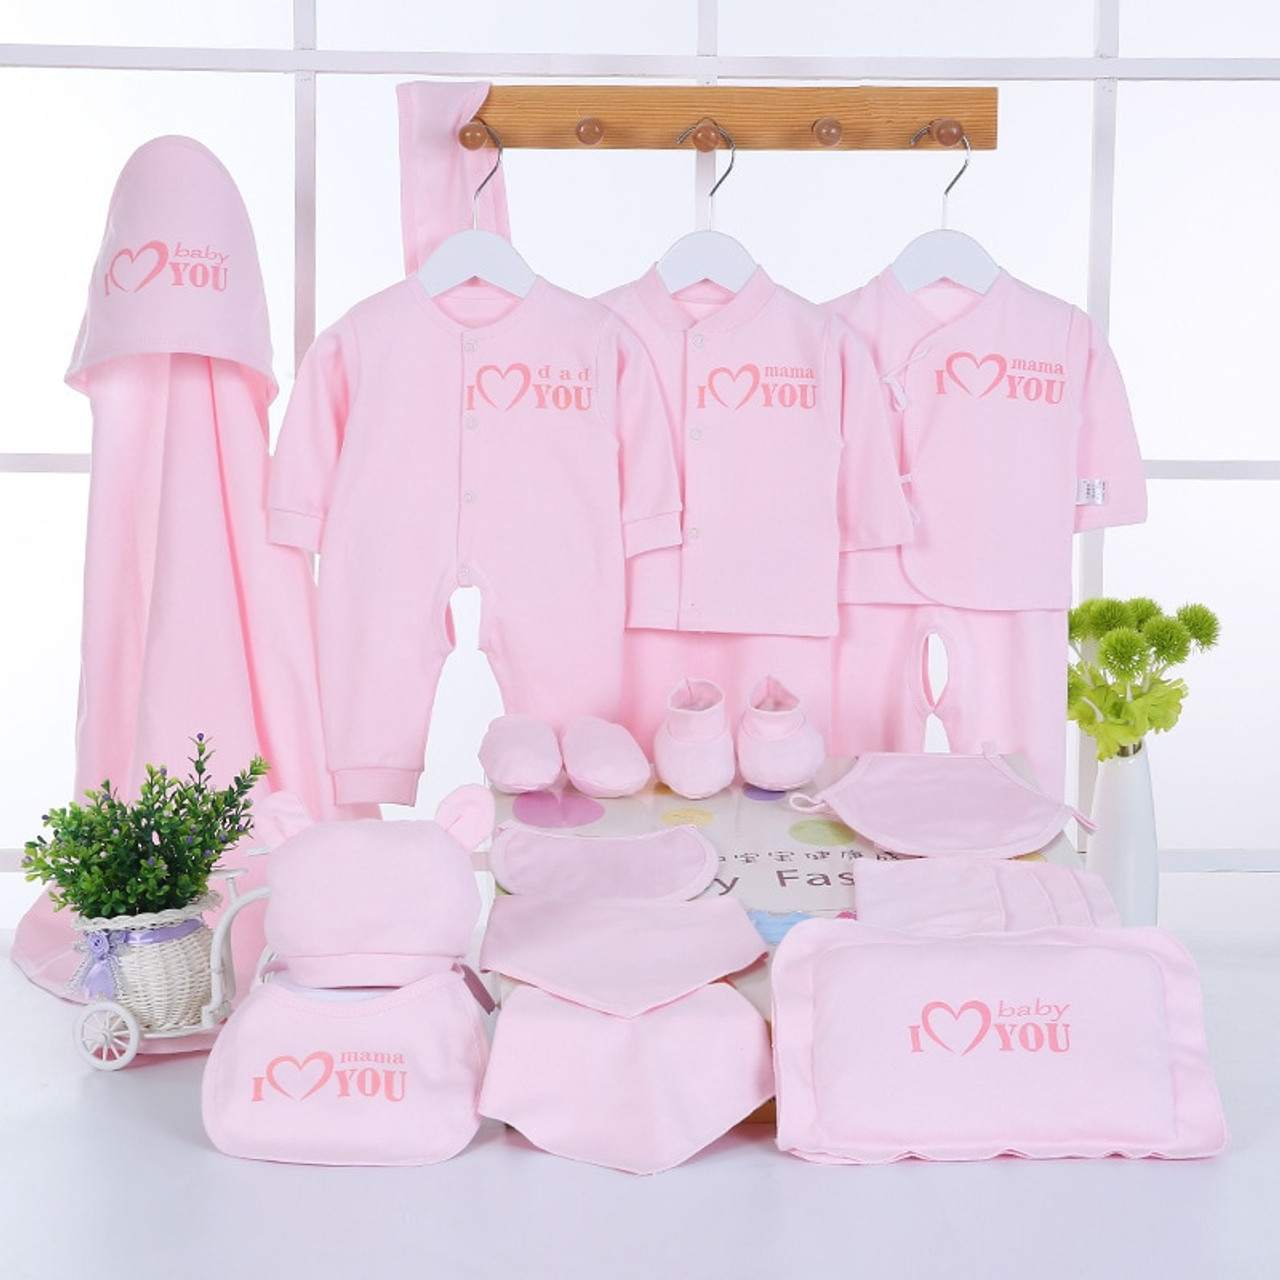 1cbeafe97cbd Emotion Moms Newborn Baby Clothing Set Brand Baby Boy Girl Clothes Set 100% Cotton  New Born Baby Clothes Underwear 22PCS set - OnshopDeals.Com